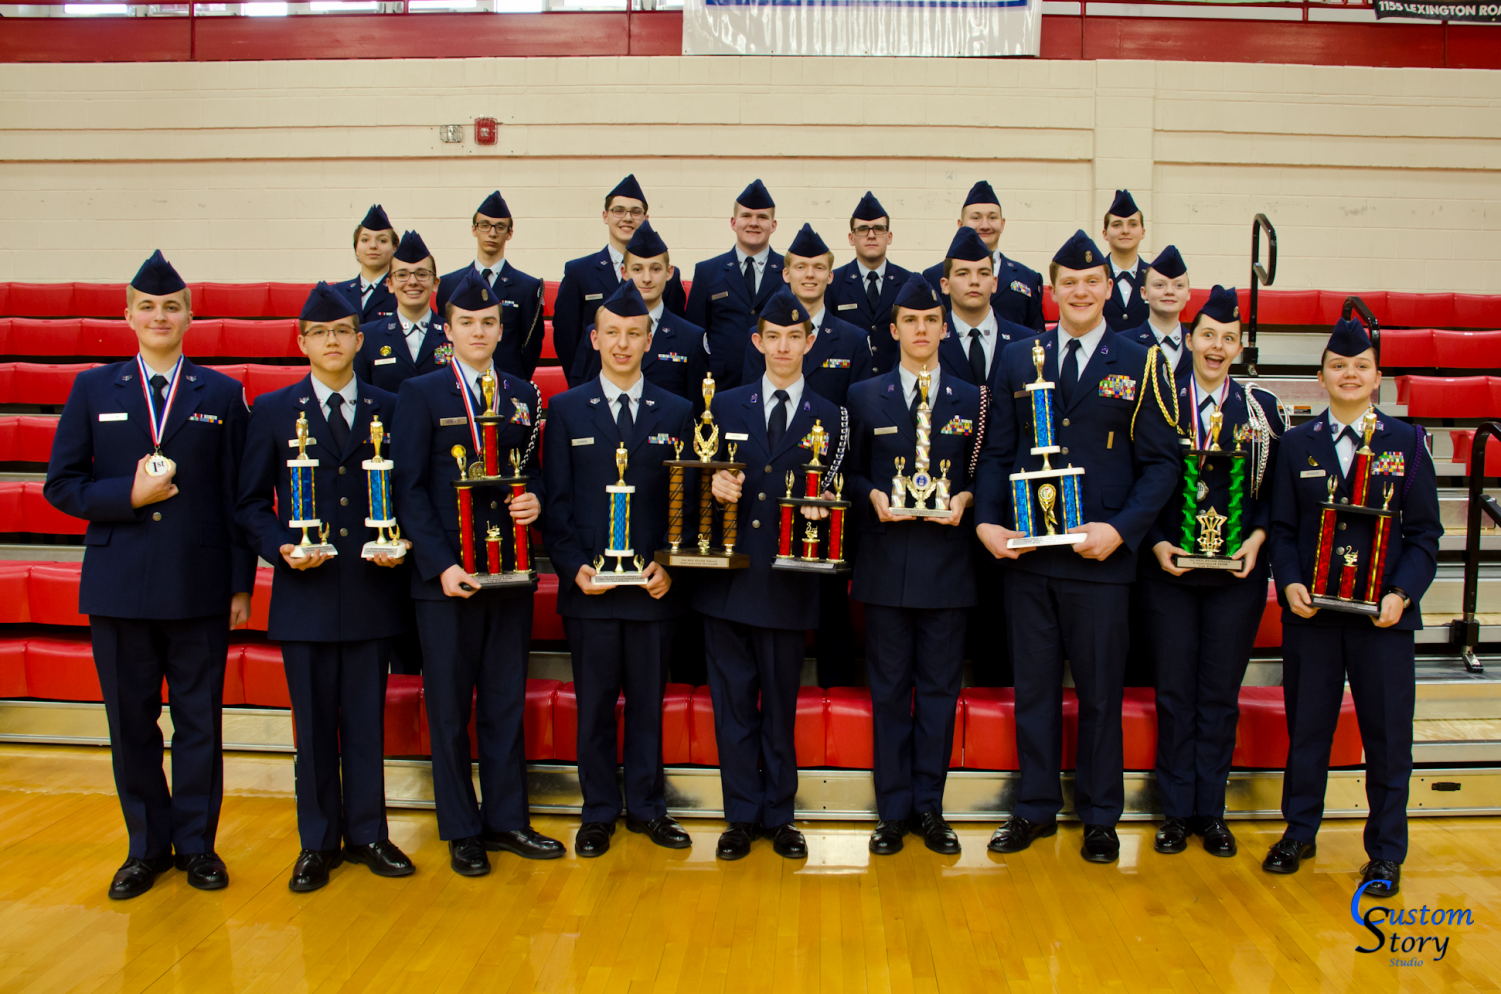 The JROTC unit at SCHS will close at the conclusion of this school year.